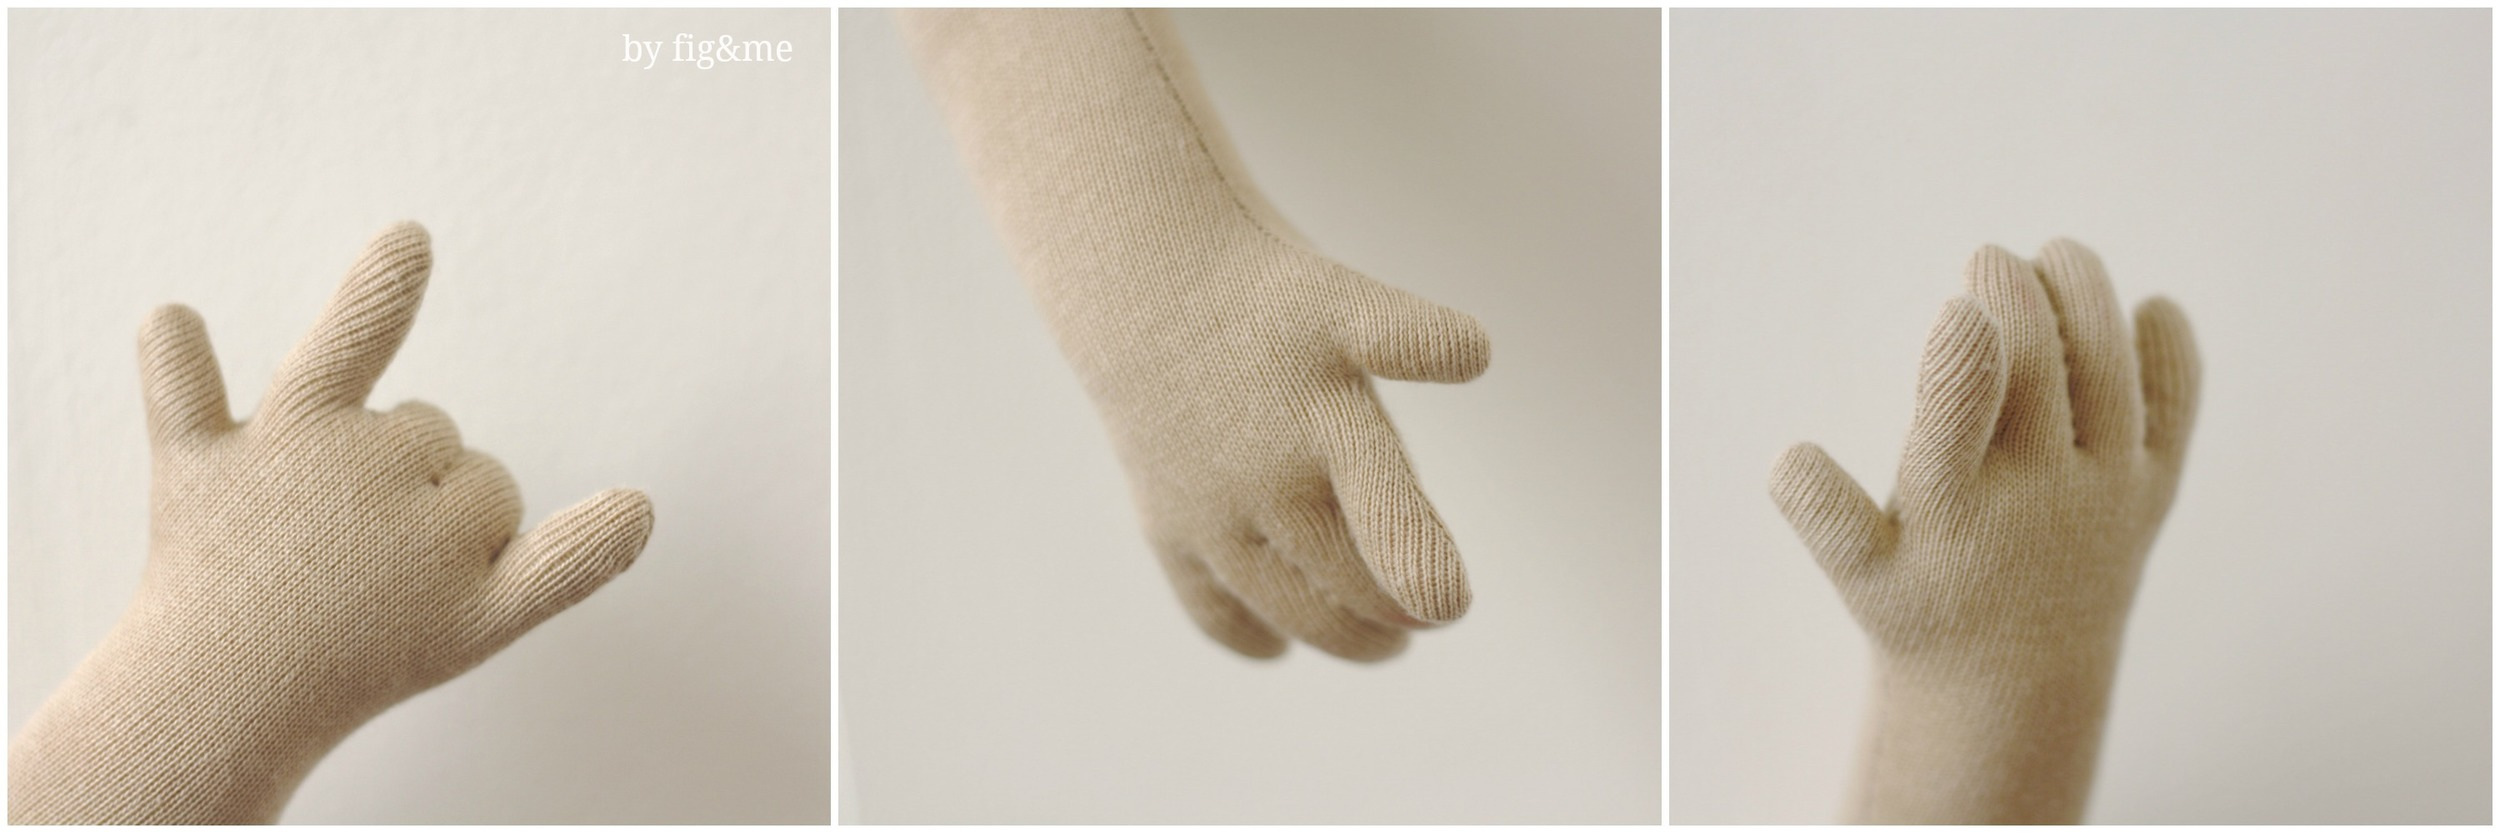 The hands of a little doll, by Fig&me.